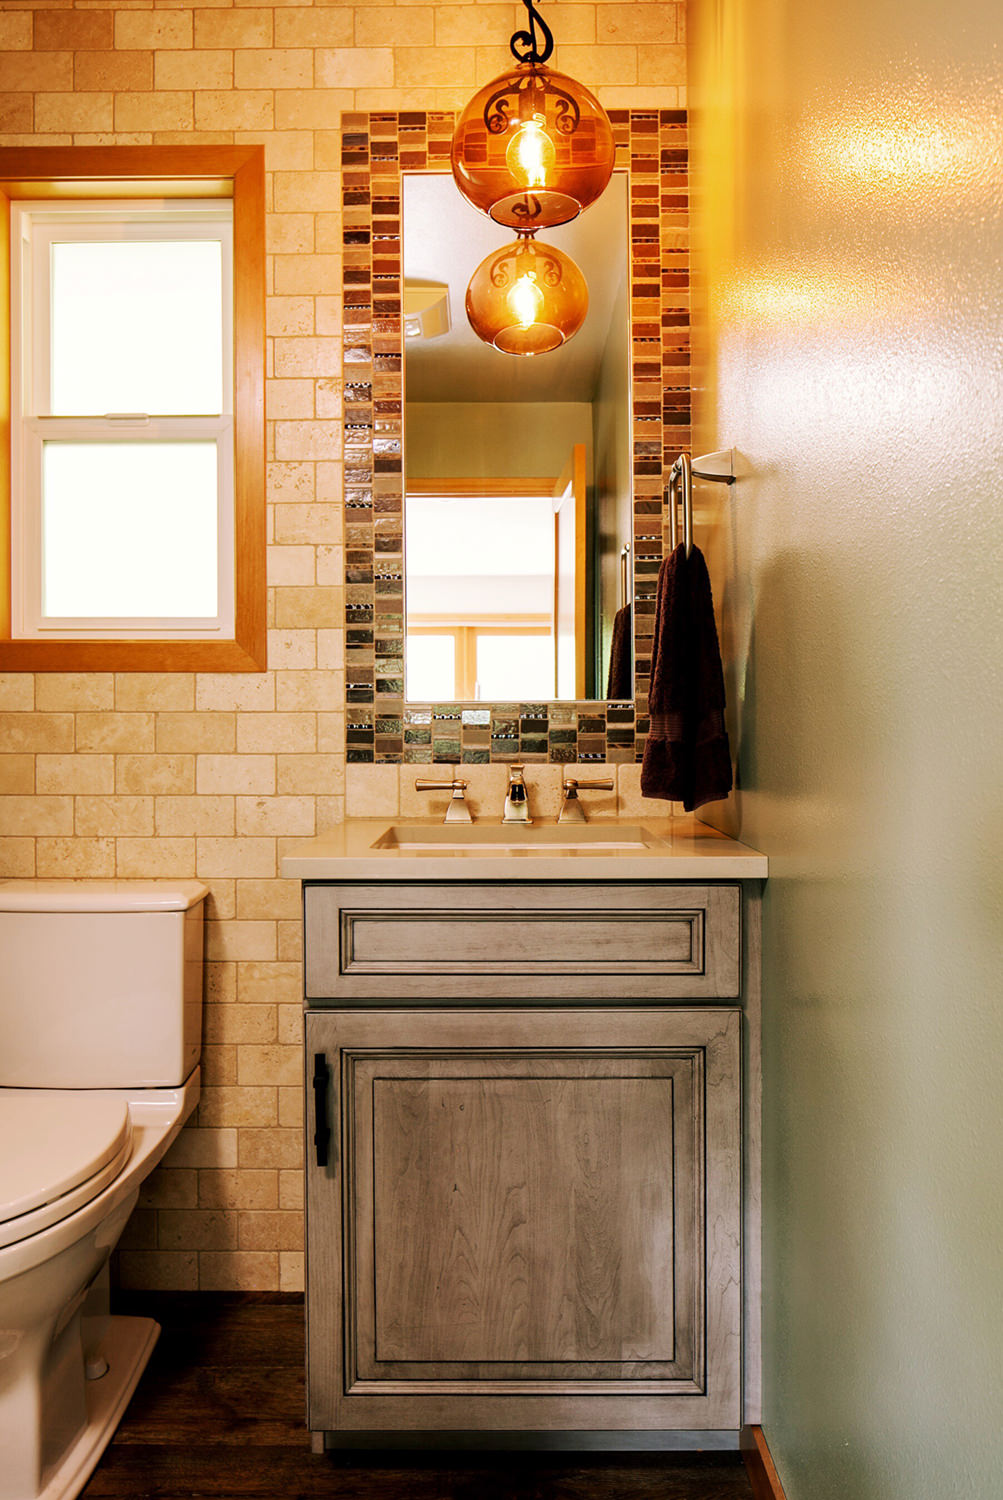 bath-room-interior-designer-Bette-Bennett-Interior-Design-kitchen-bathroom-Gig-Harbor-Washington-2.JPG